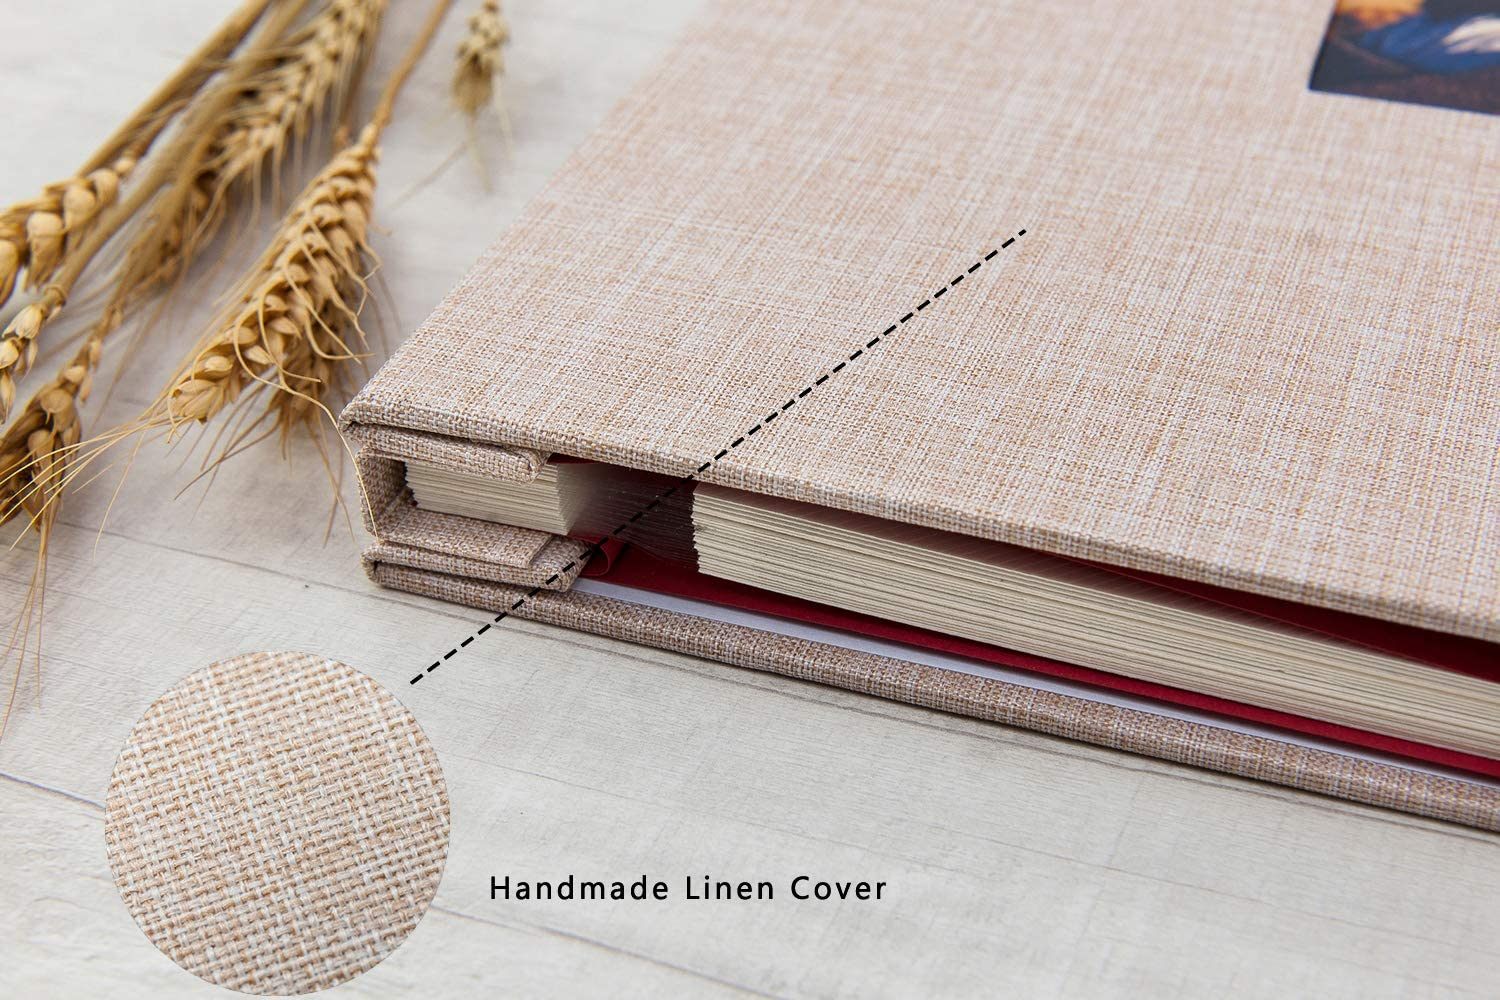 Beige 13.2x12.8 Inch Large Self Adhesive Photo Album Magnetic Scrapbook Album 40 Magnetic Double Sided Pages Linen Hardcover DIY Photo Album with A Metallic Marker Pen